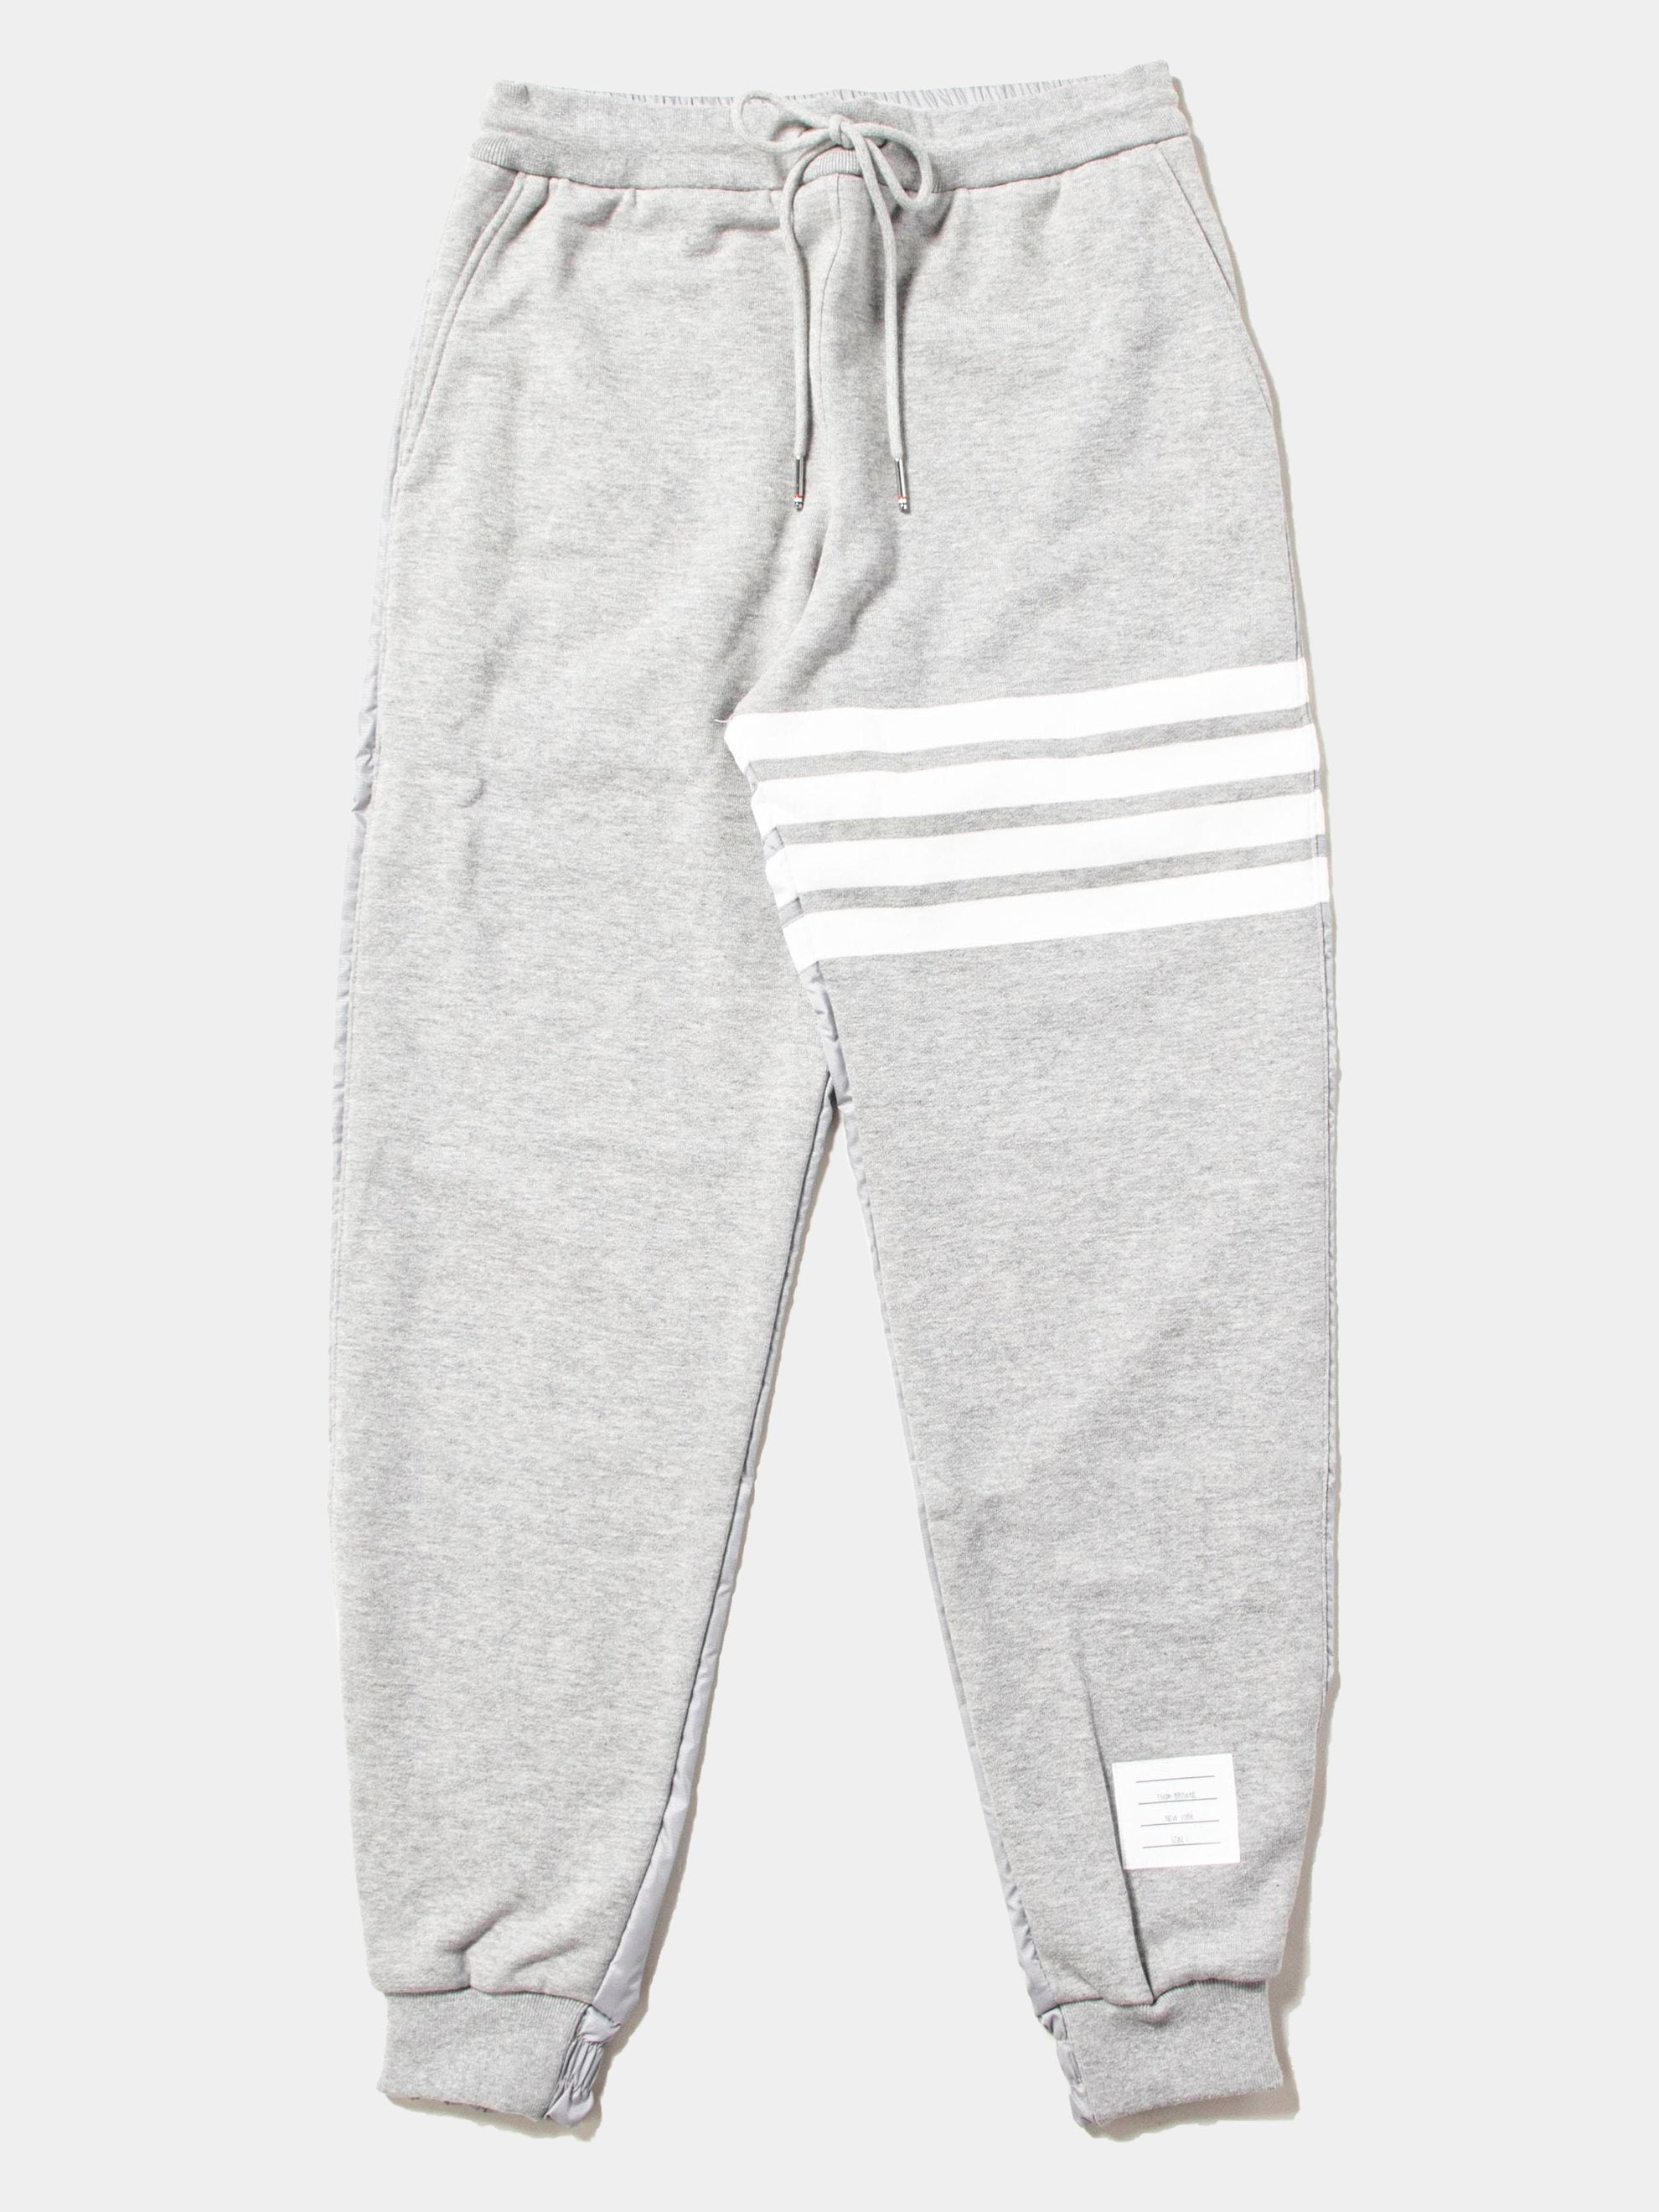 Light Grey Half And Half Sweatpants In Ripstop & Classic Loopback Jersey With 4 Bar Stripe 1